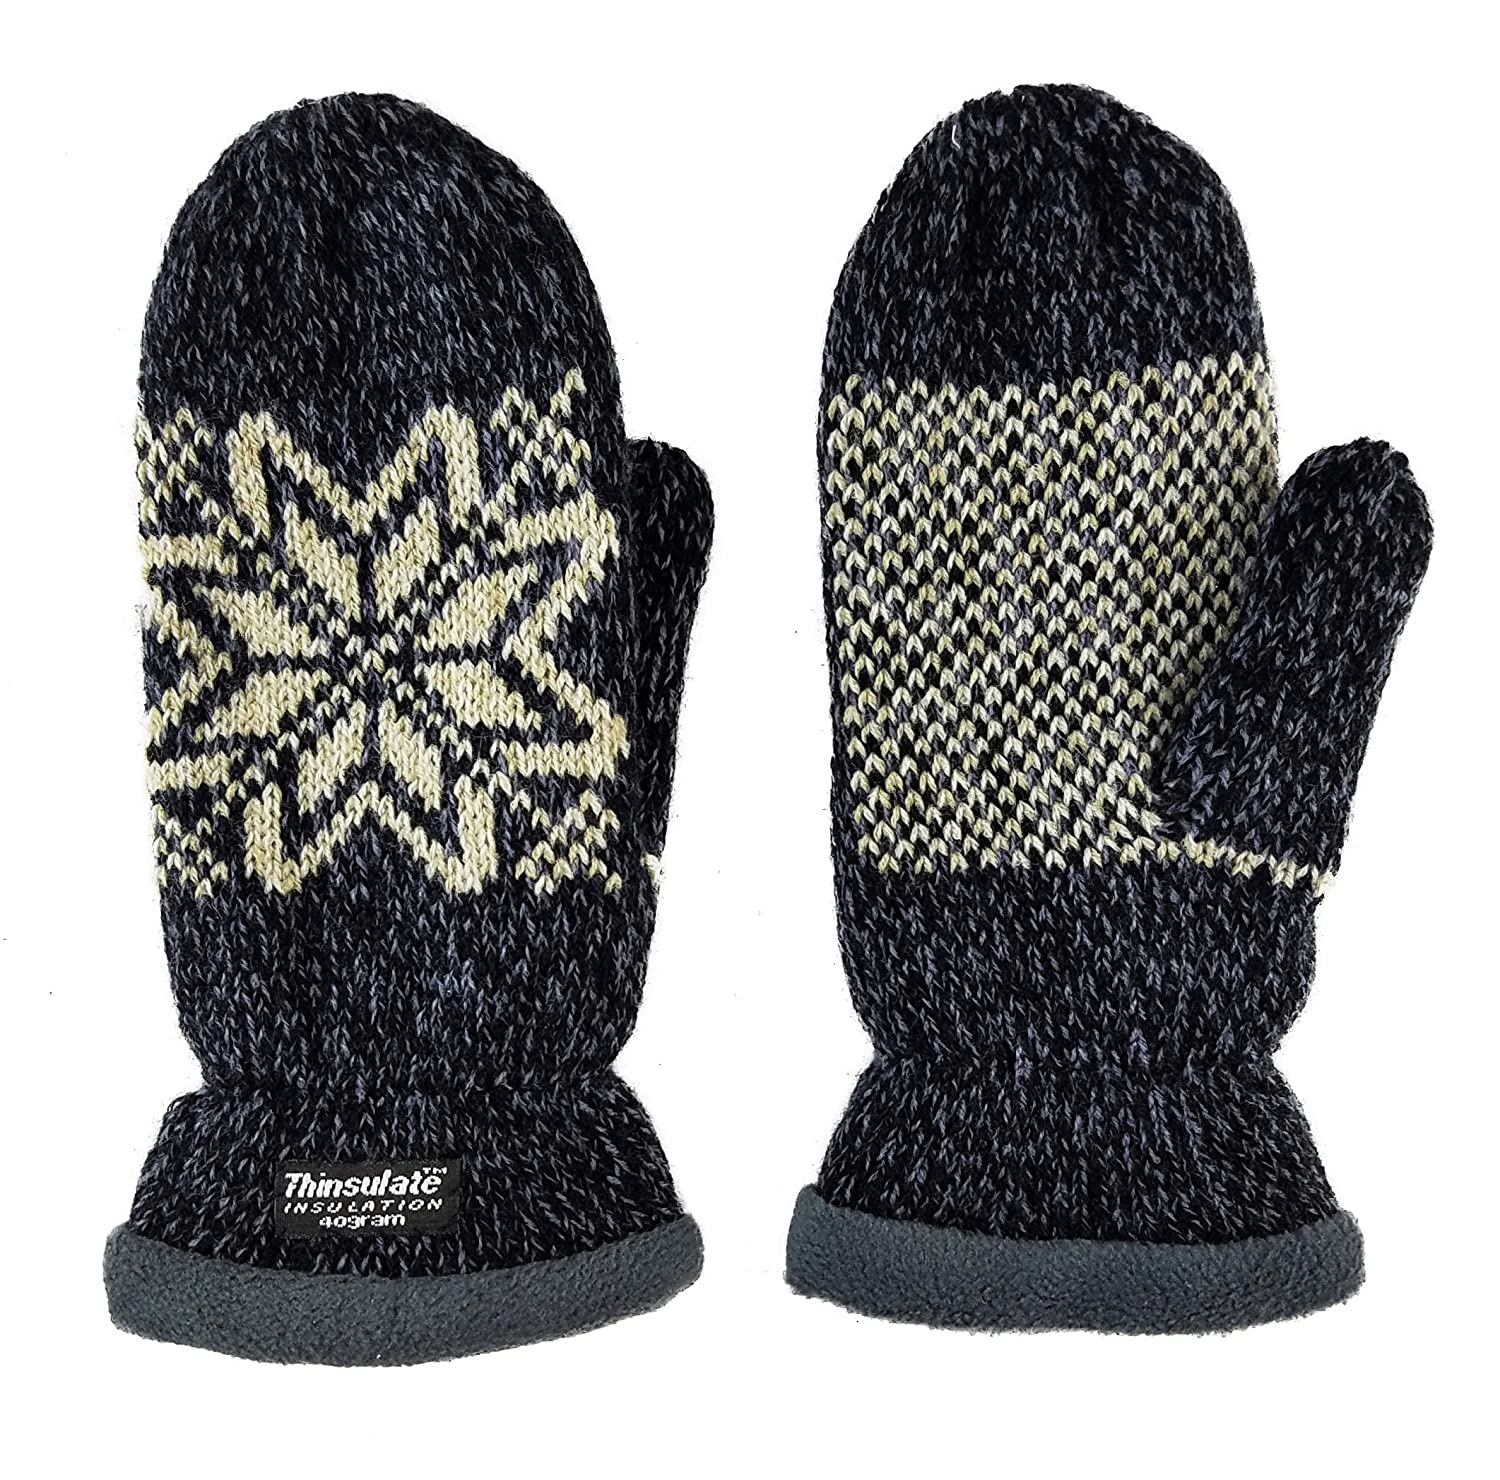 Bruceriver Women Snowflake Knit Mittens with Warm Thinsulate Fleece Lining Size M (Dk.Grey) HESHI BR16G102-Dk.Grey Size M